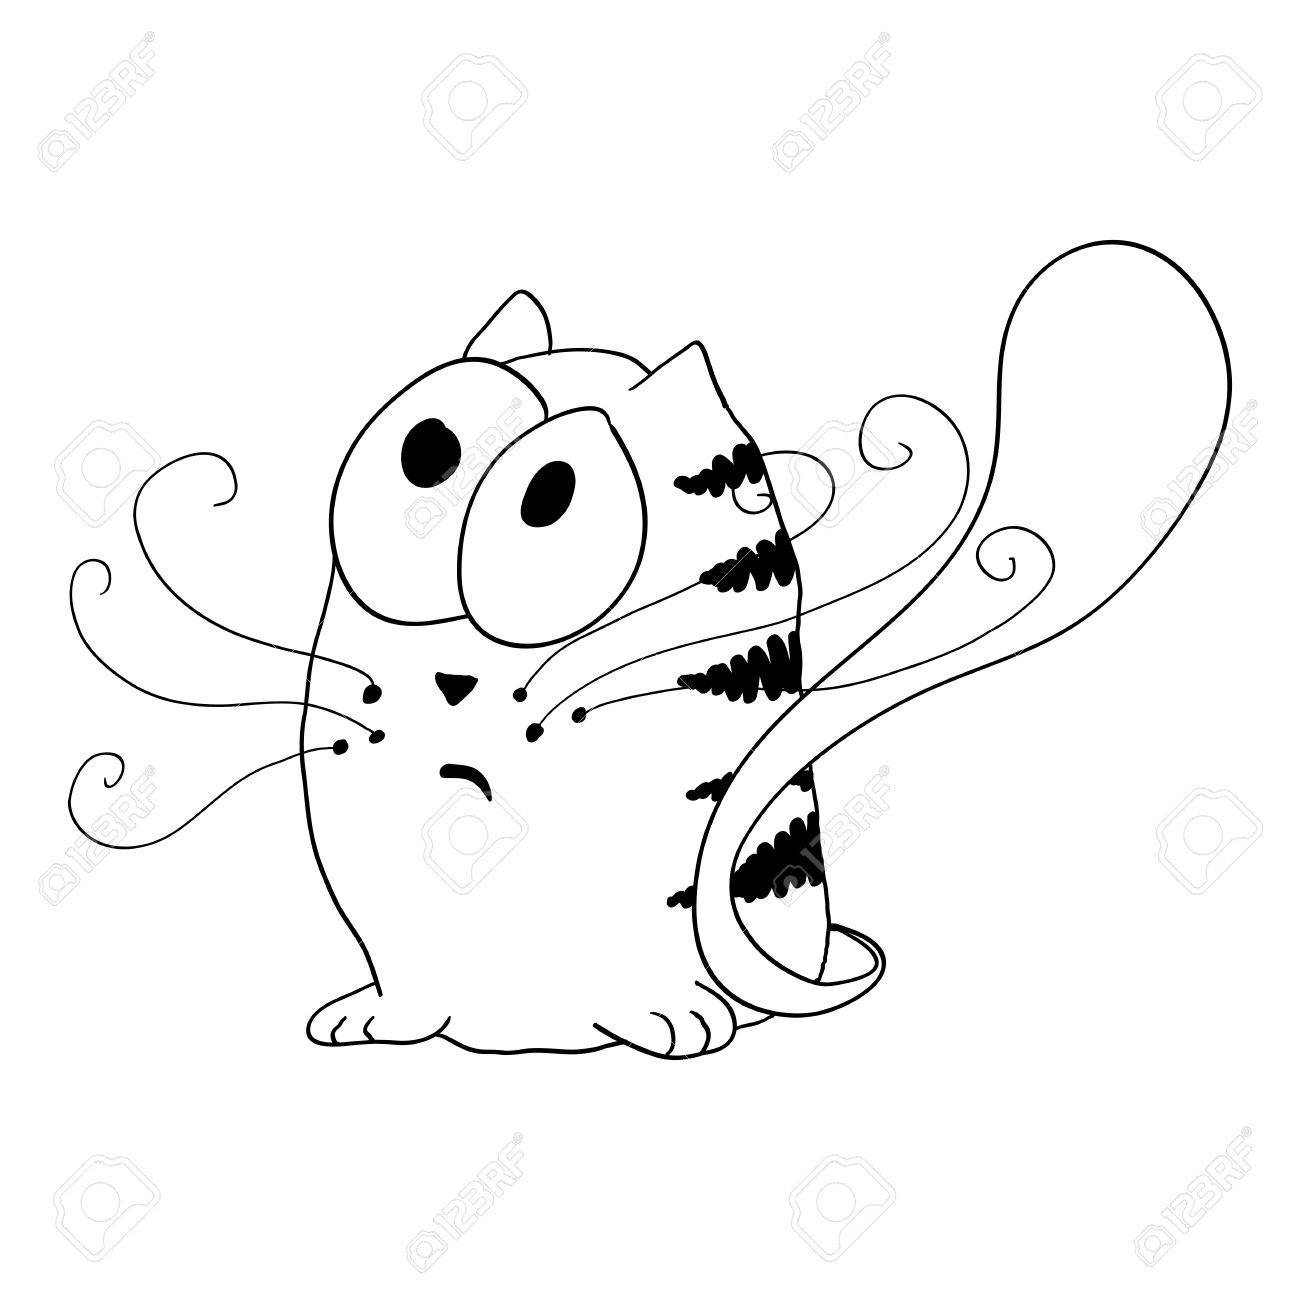 1300x1300 Sketch Cat Sitting On The Floor Royalty Free Cliparts, Vectors